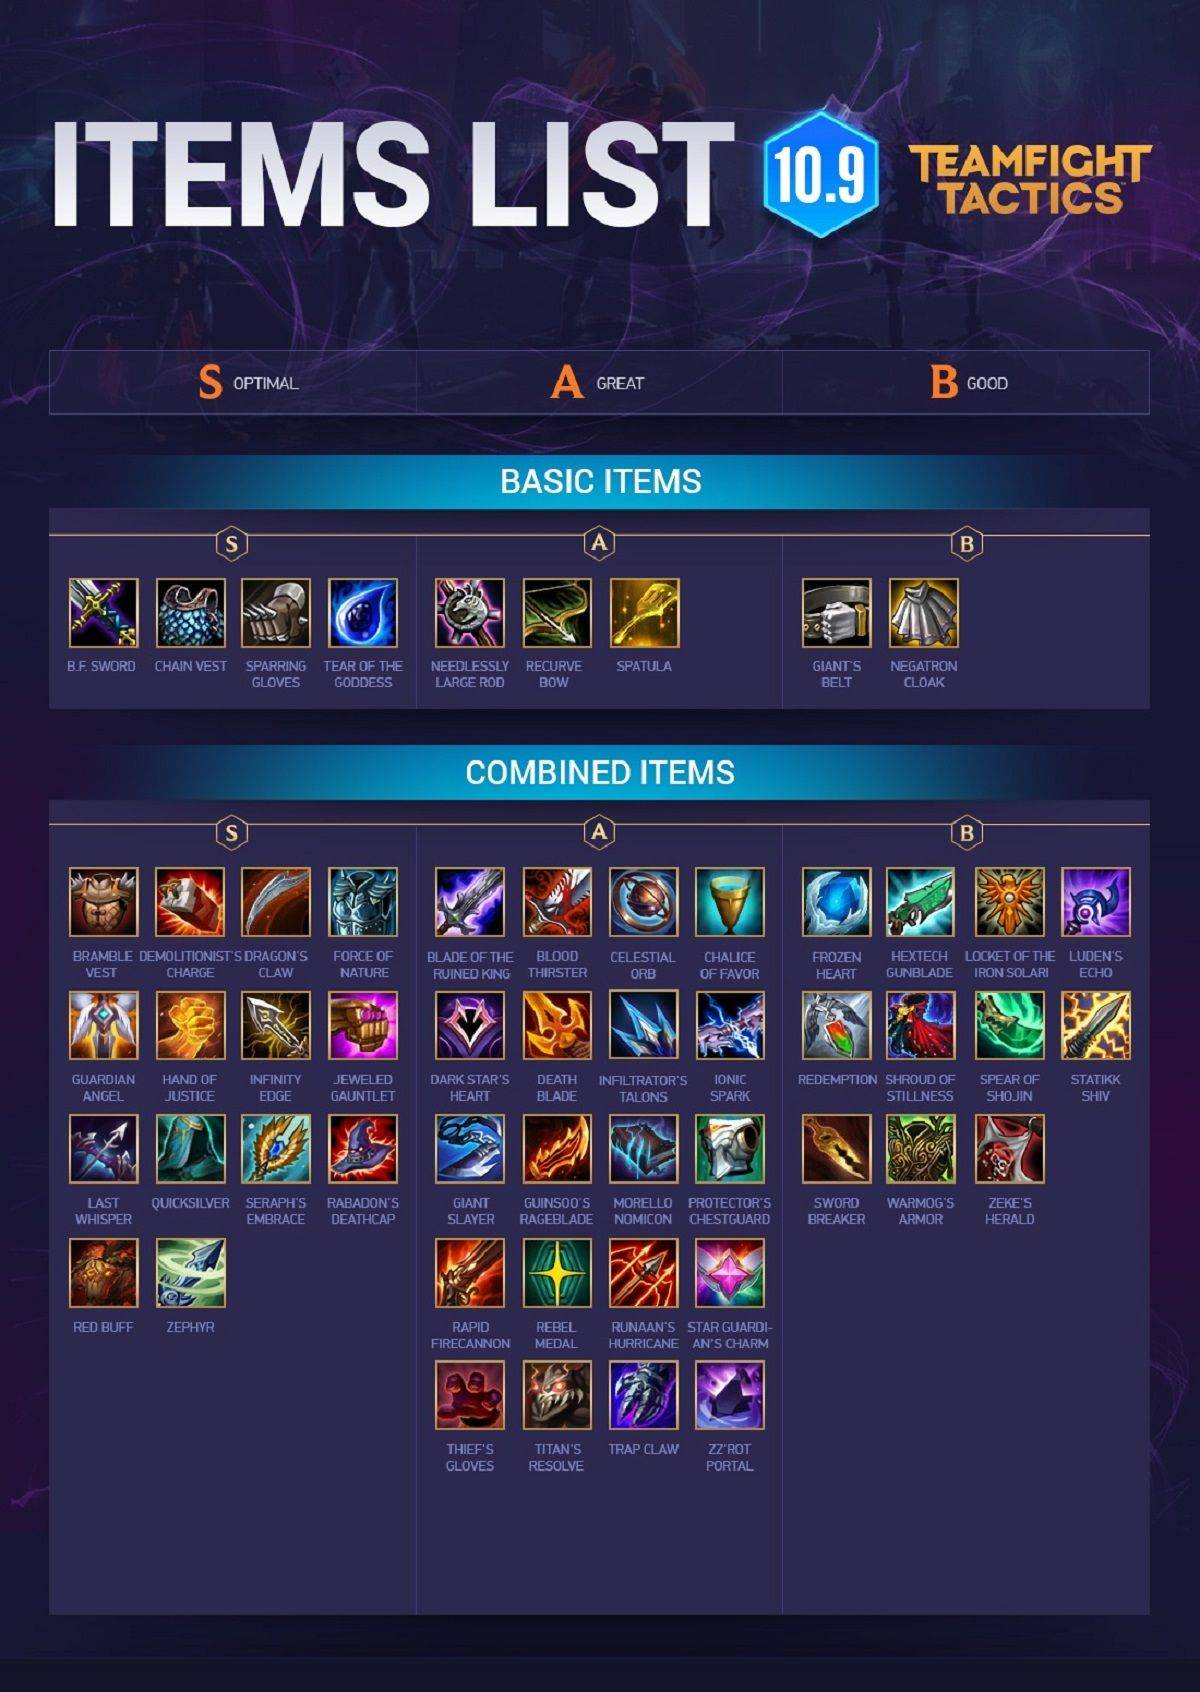 Objects in Teamfight Tactics